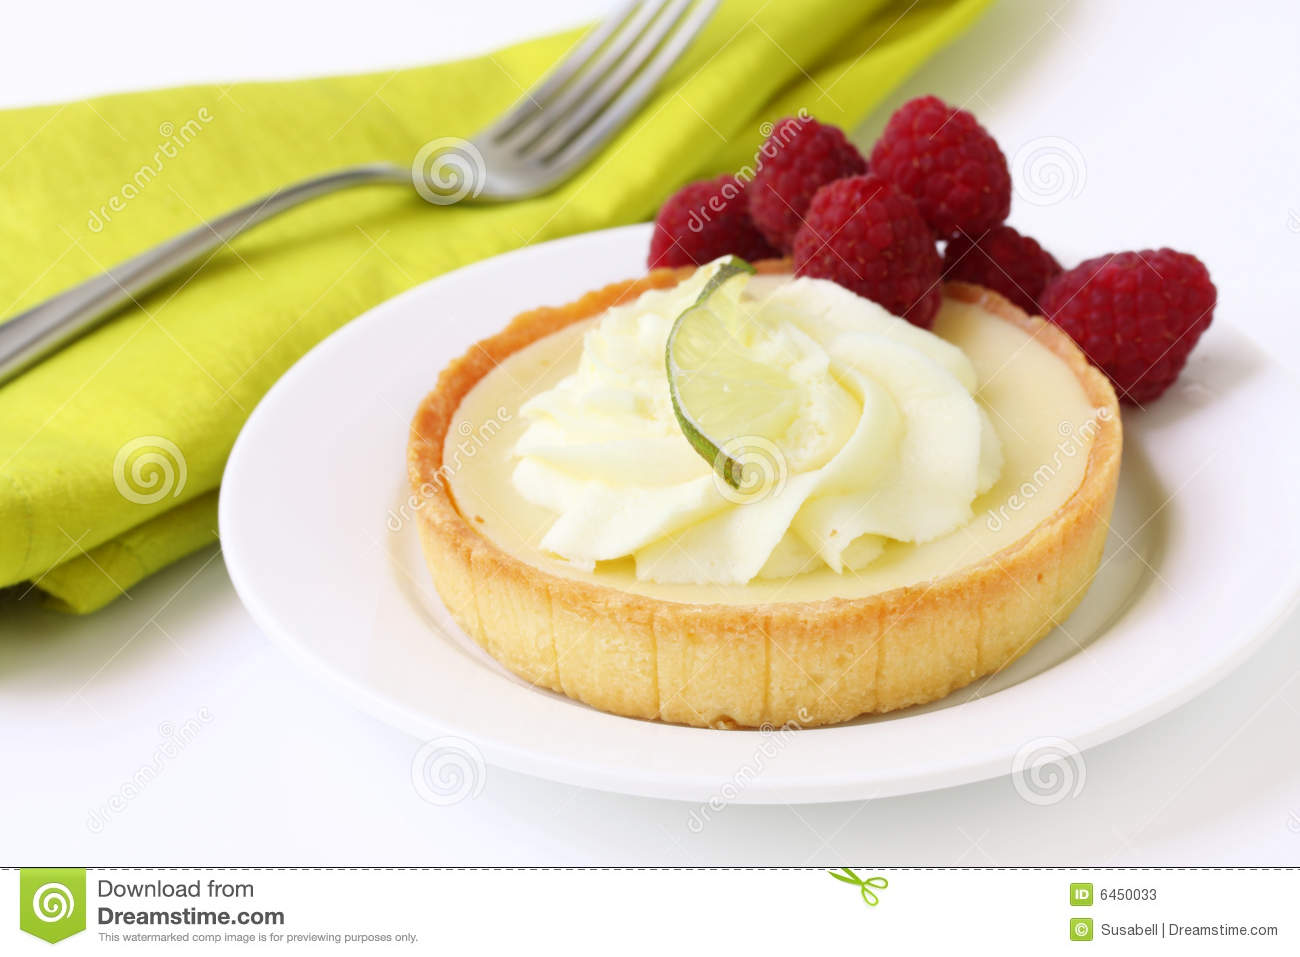 Key Lime Tart Stock Photos - Image: 6450033